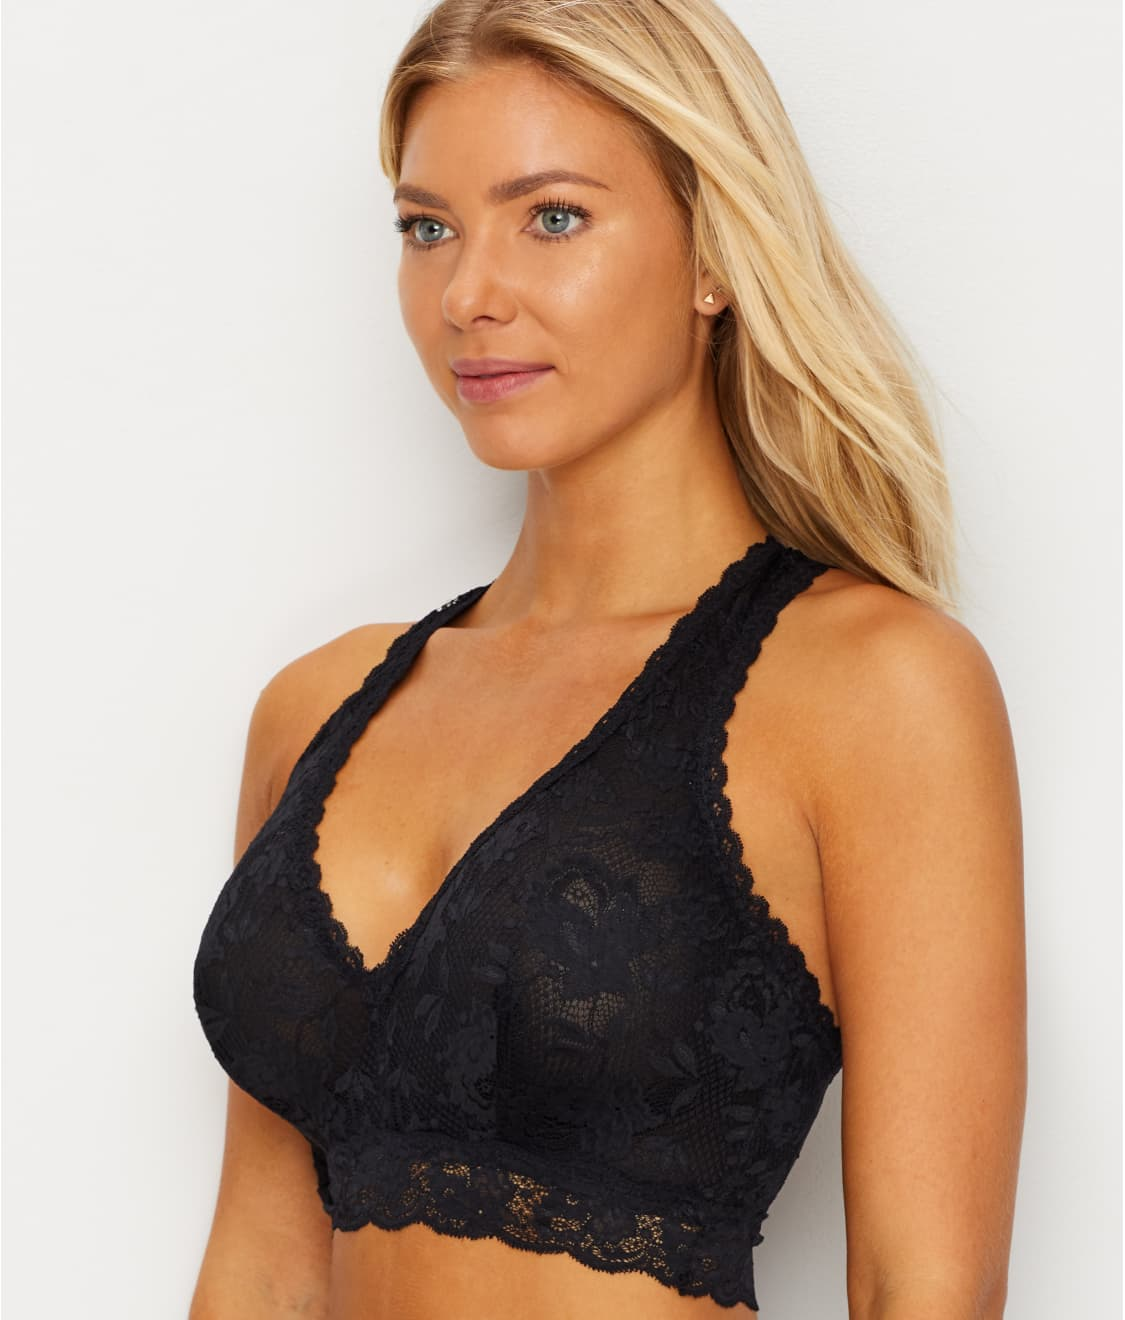 f326d03188288 See Never Say Never Curvy Racie Bralette in Black